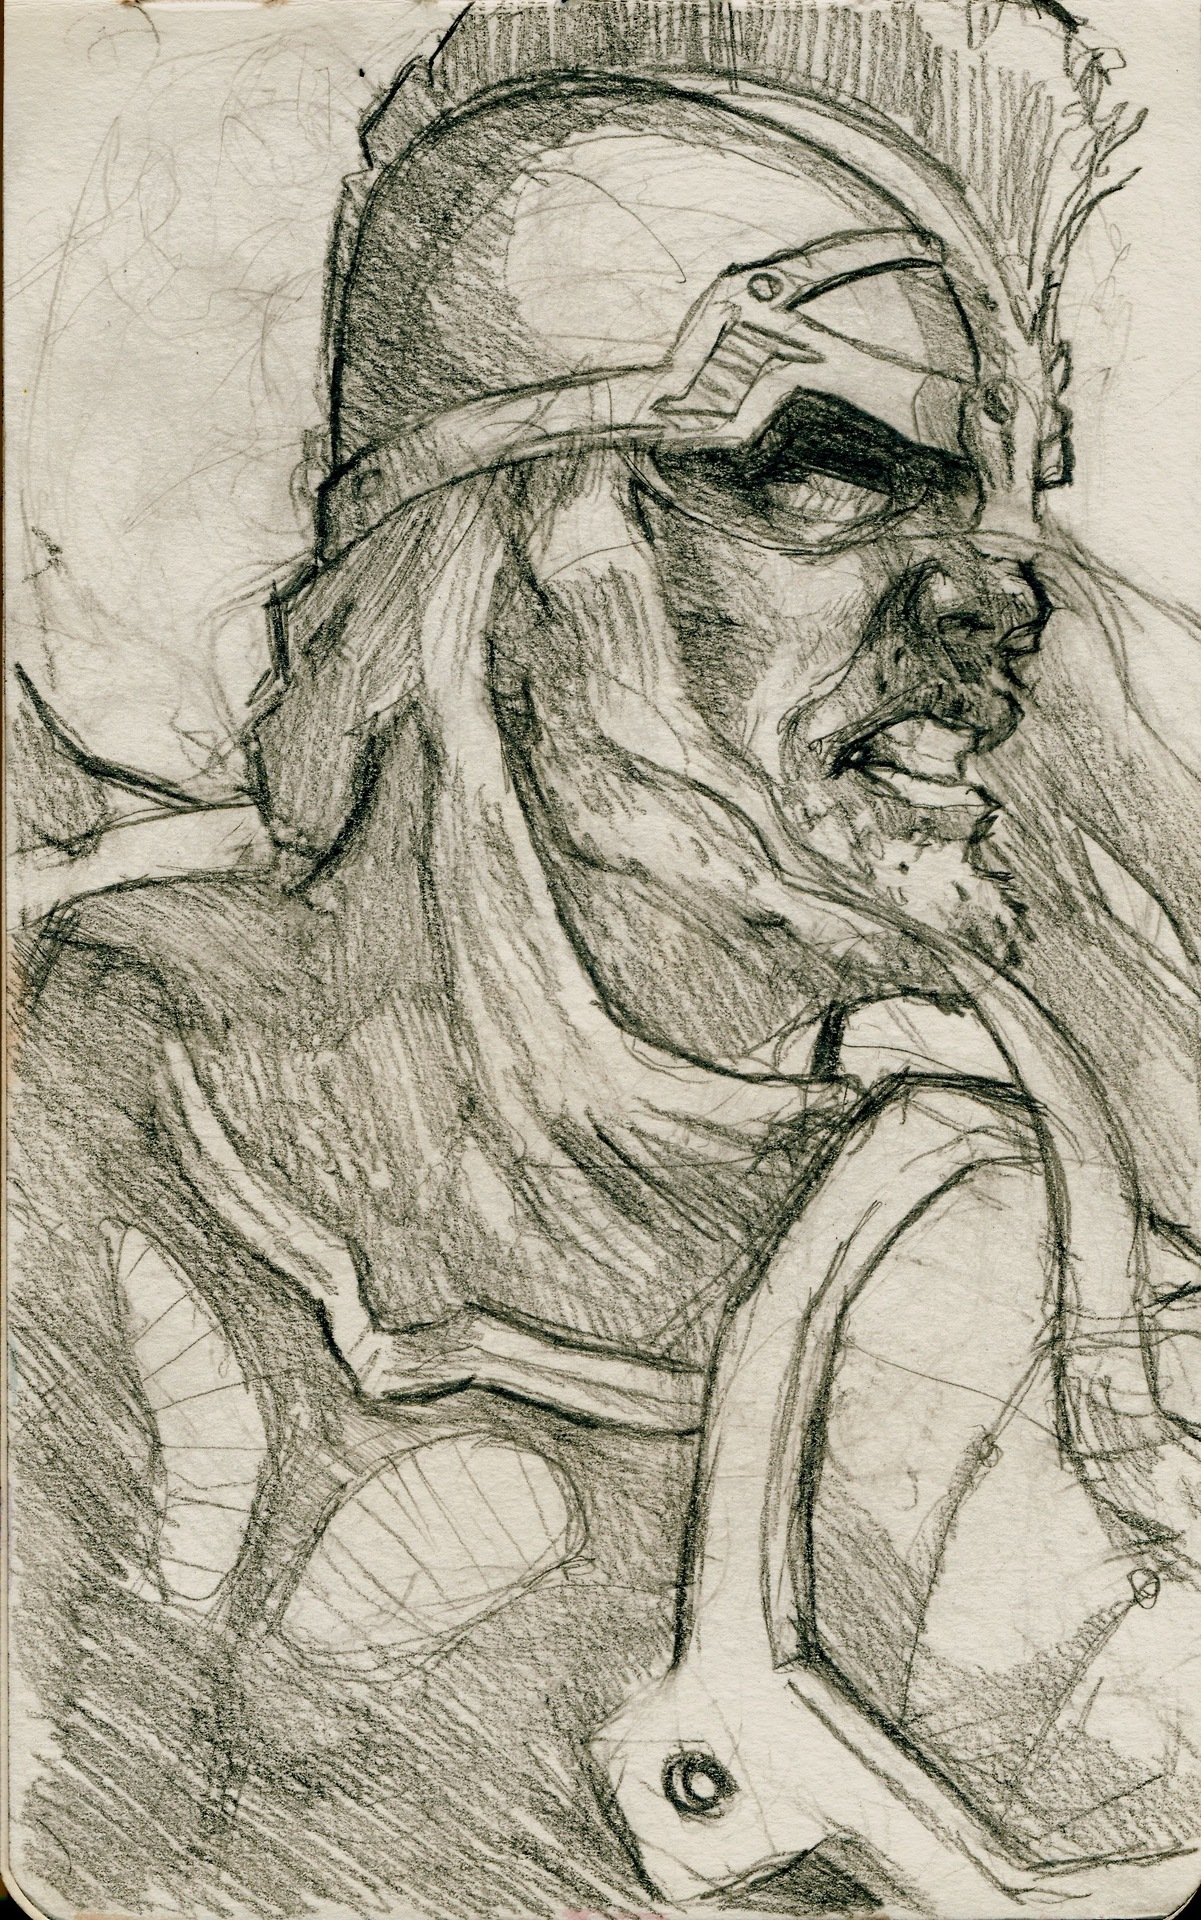 At the moment I'm working on some Tolkien fan art, so until I have that done, I'd like to share with you an old sketch I had lying about. I think it's supposed to be Eomer.